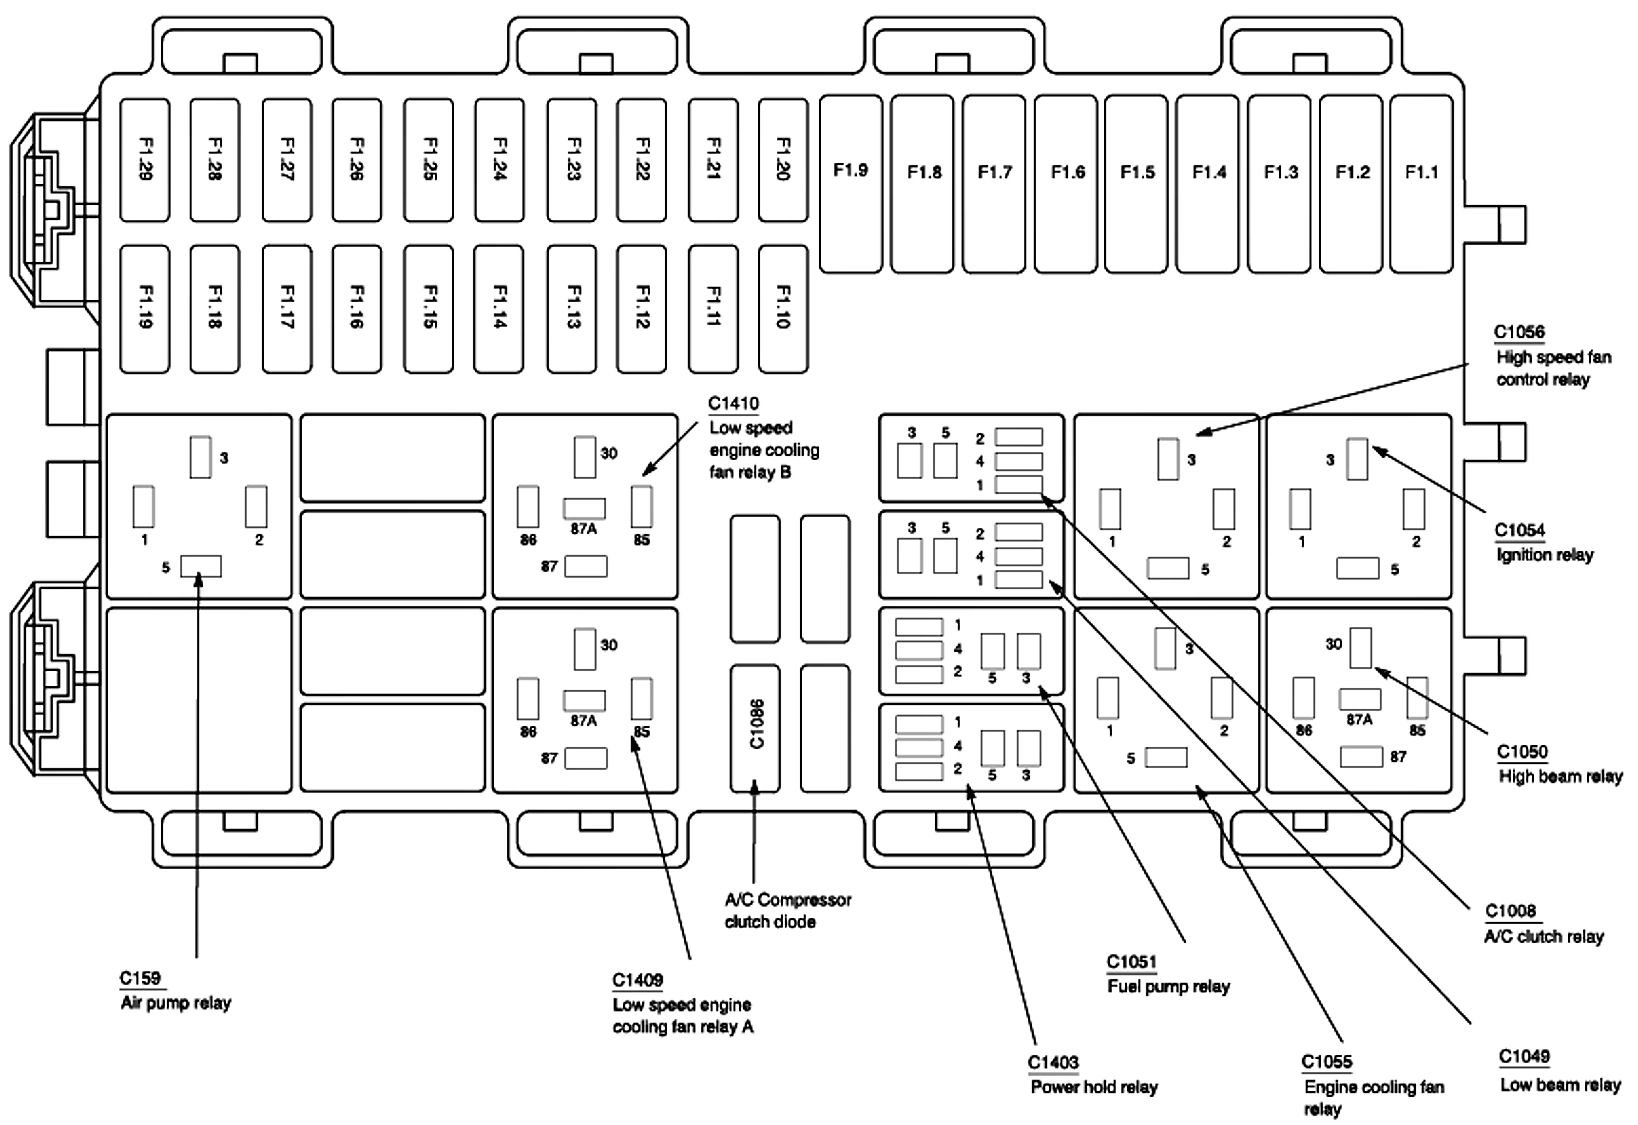 [DIAGRAM_1JK]  Ford Focus Fuse Box 2007 Piaa Wiring Diagram Free Picture Schematic -  prabowo.23.allianceconseil59.fr | 2008 Focus Fuse Diagram |  | prabowo.23.allianceconseil59.fr